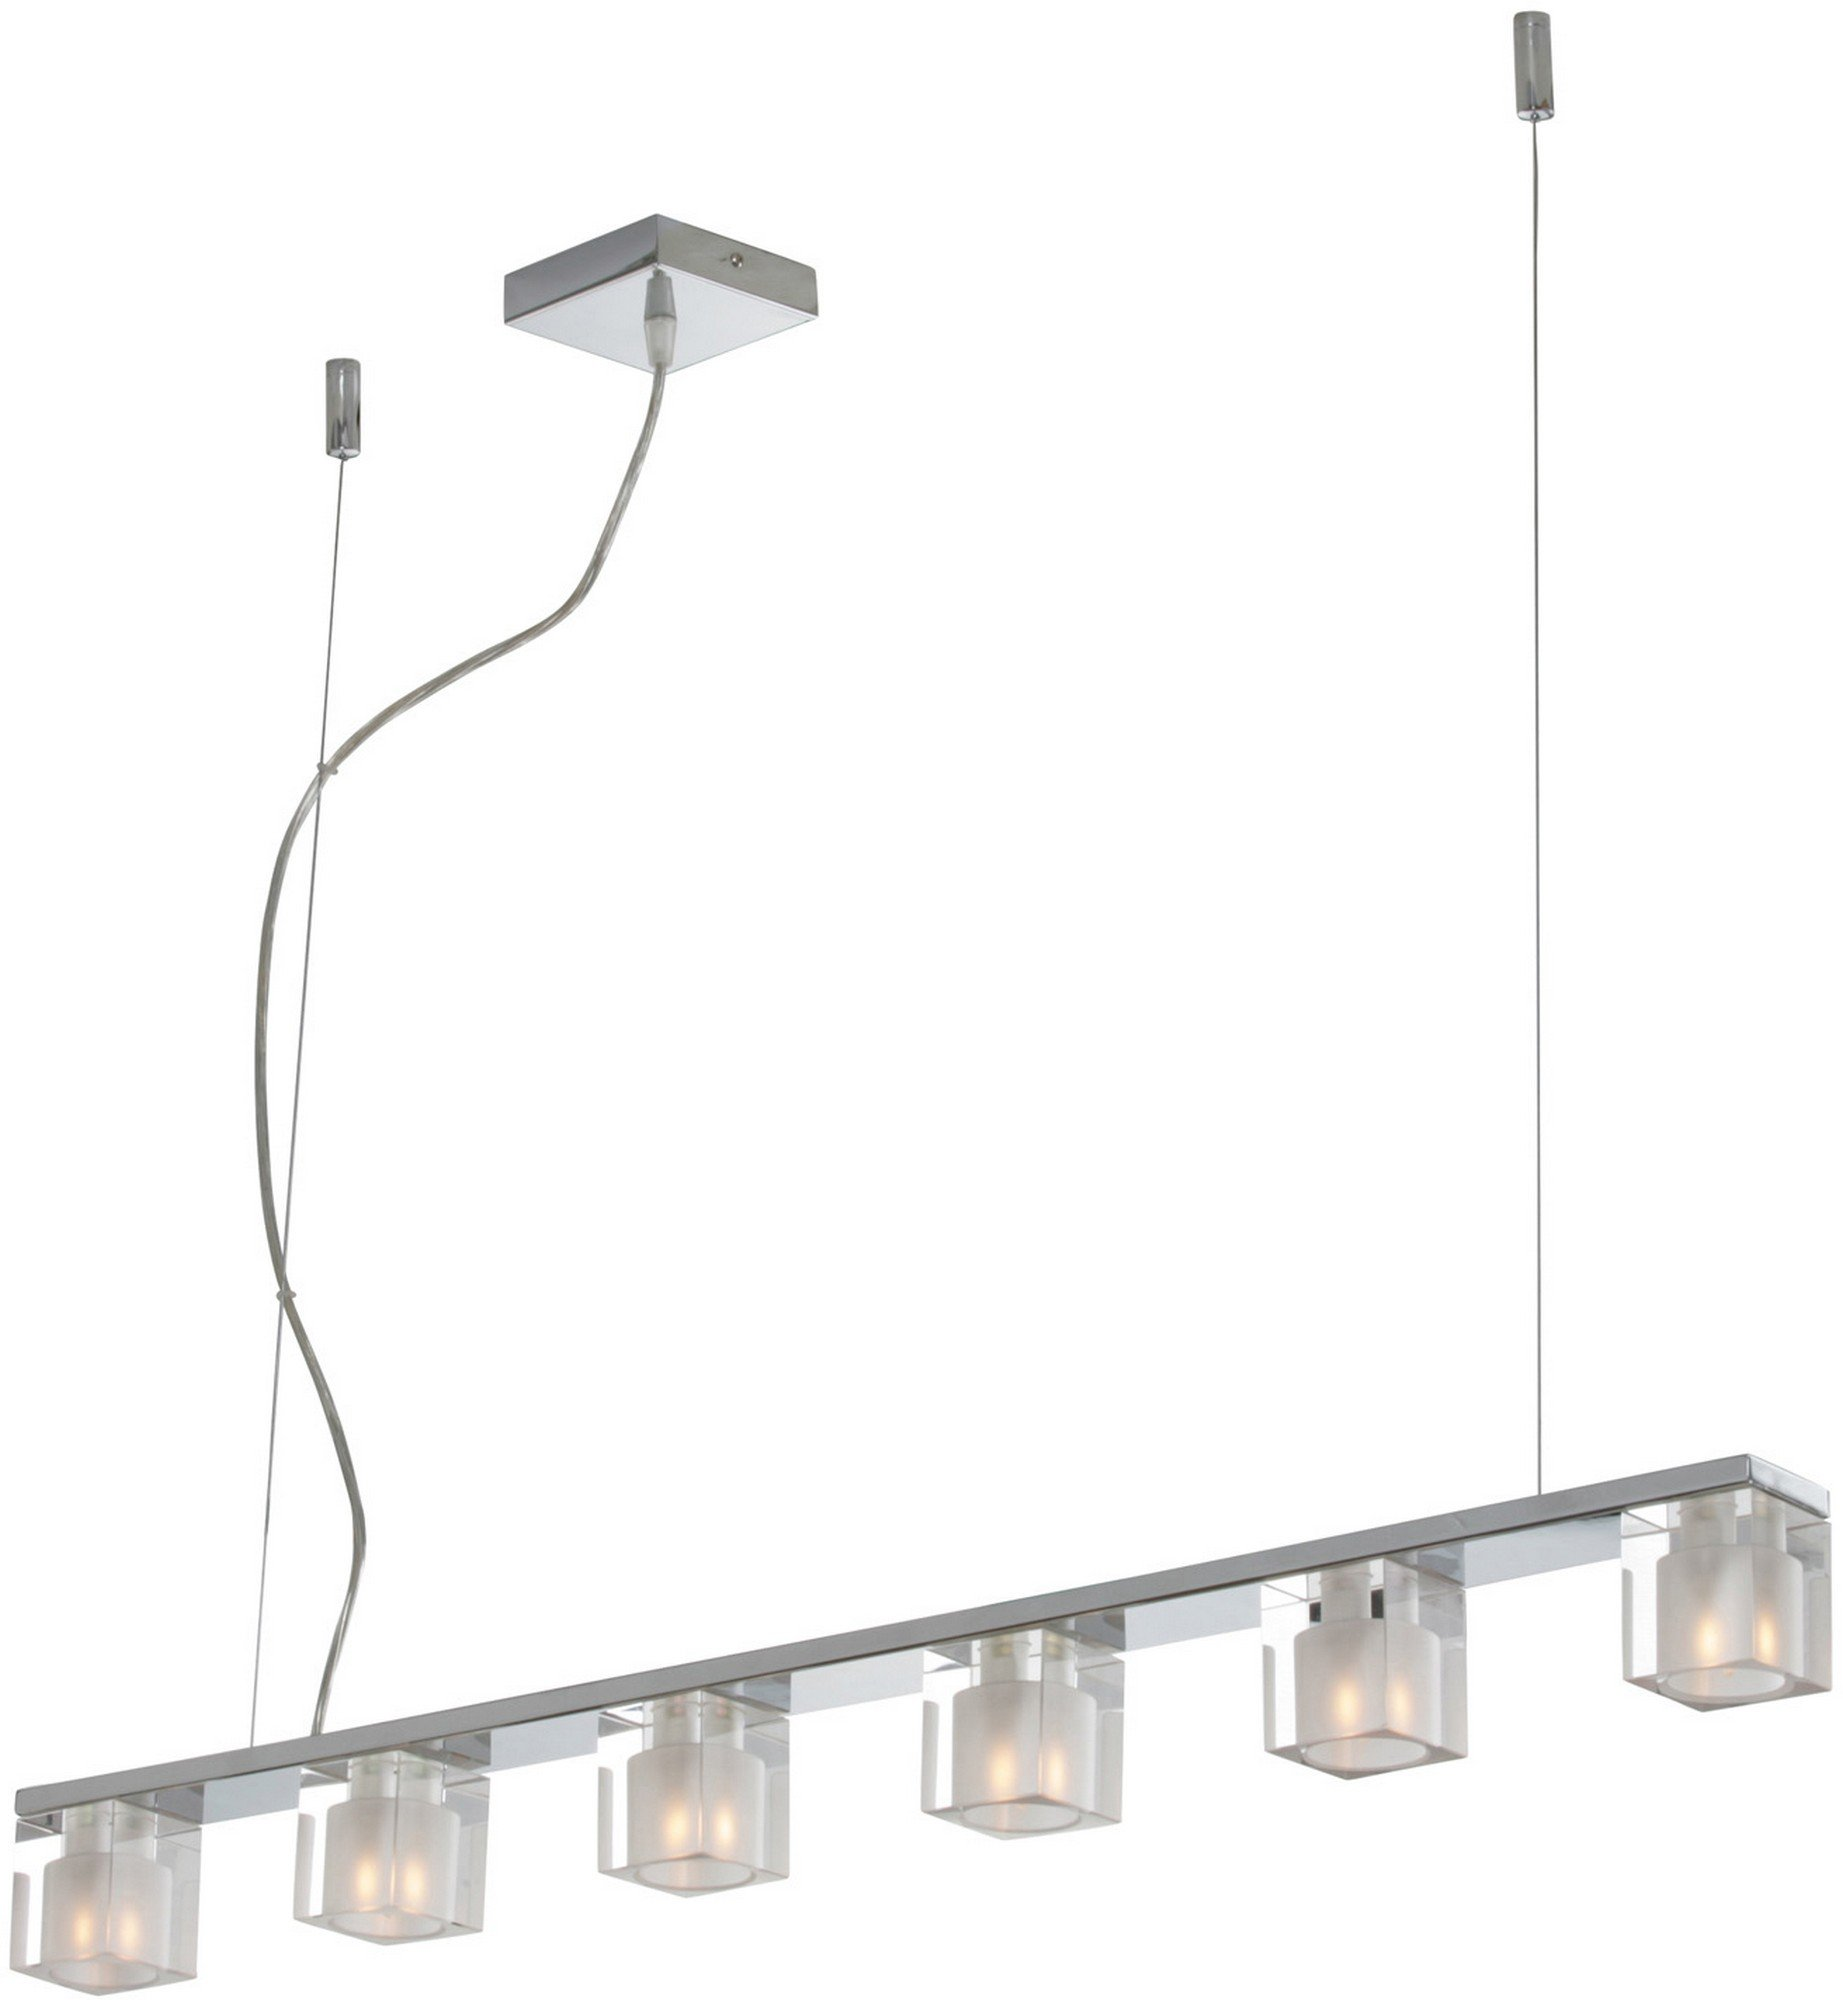 ET2 E22034-18 Blocs 6-Light Linear Pendant, Polished Chrome Finish, Clear/Frosted Glass, G9 Frost Xenon Bulb, 7.5W Max., Dry Safety Rated, 2700K Color Temp., Lucite Acrylic Shade Material, 1400 Rated Lumens